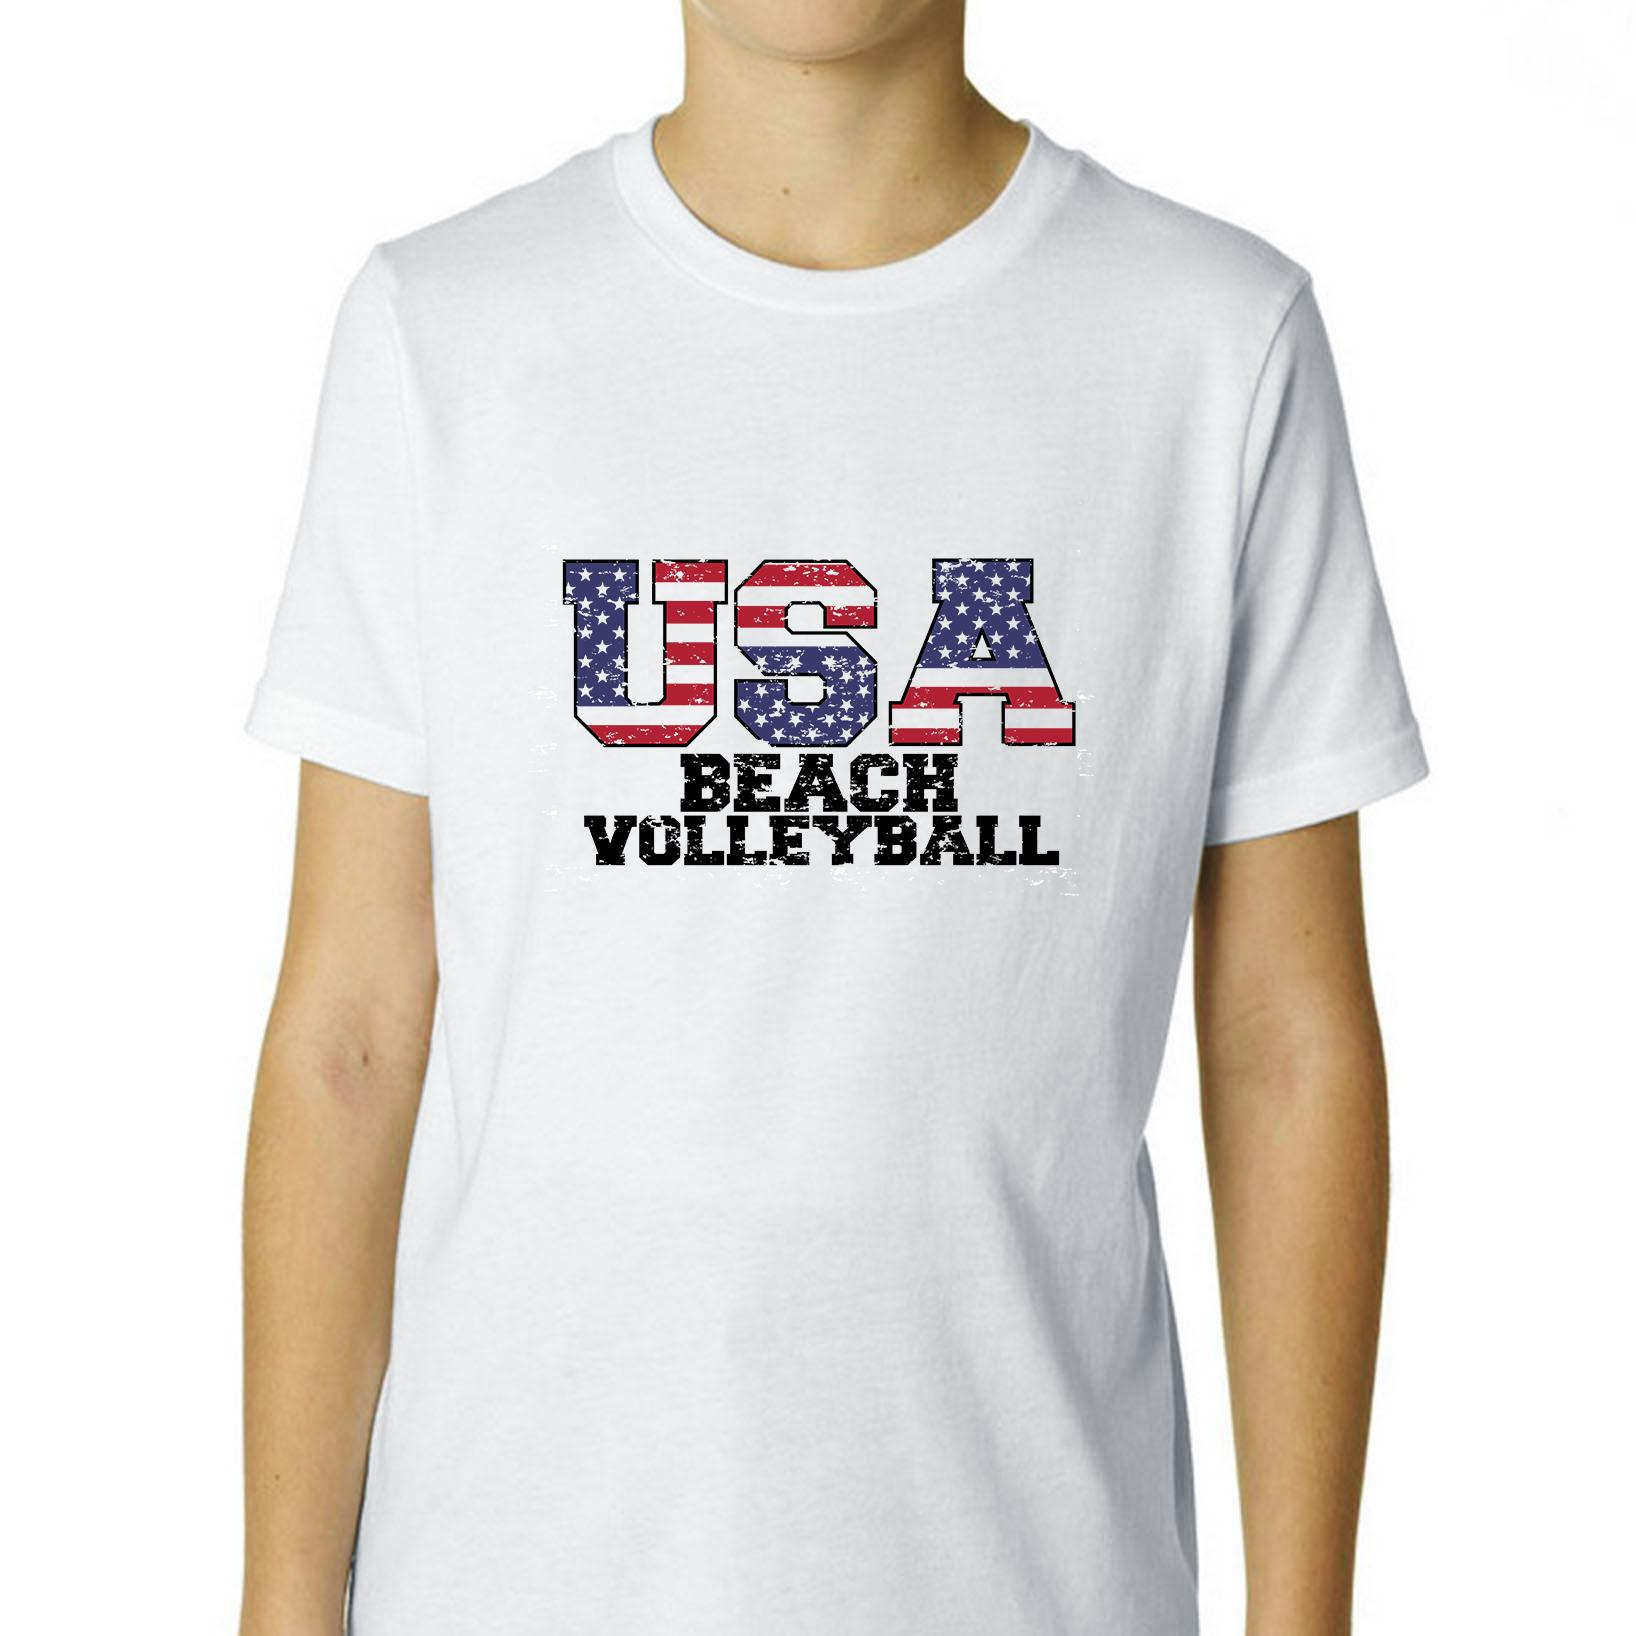 USA Olympics - Beach Volleyball - Vintage Letters Boy's Cotton Youth T-Shirt